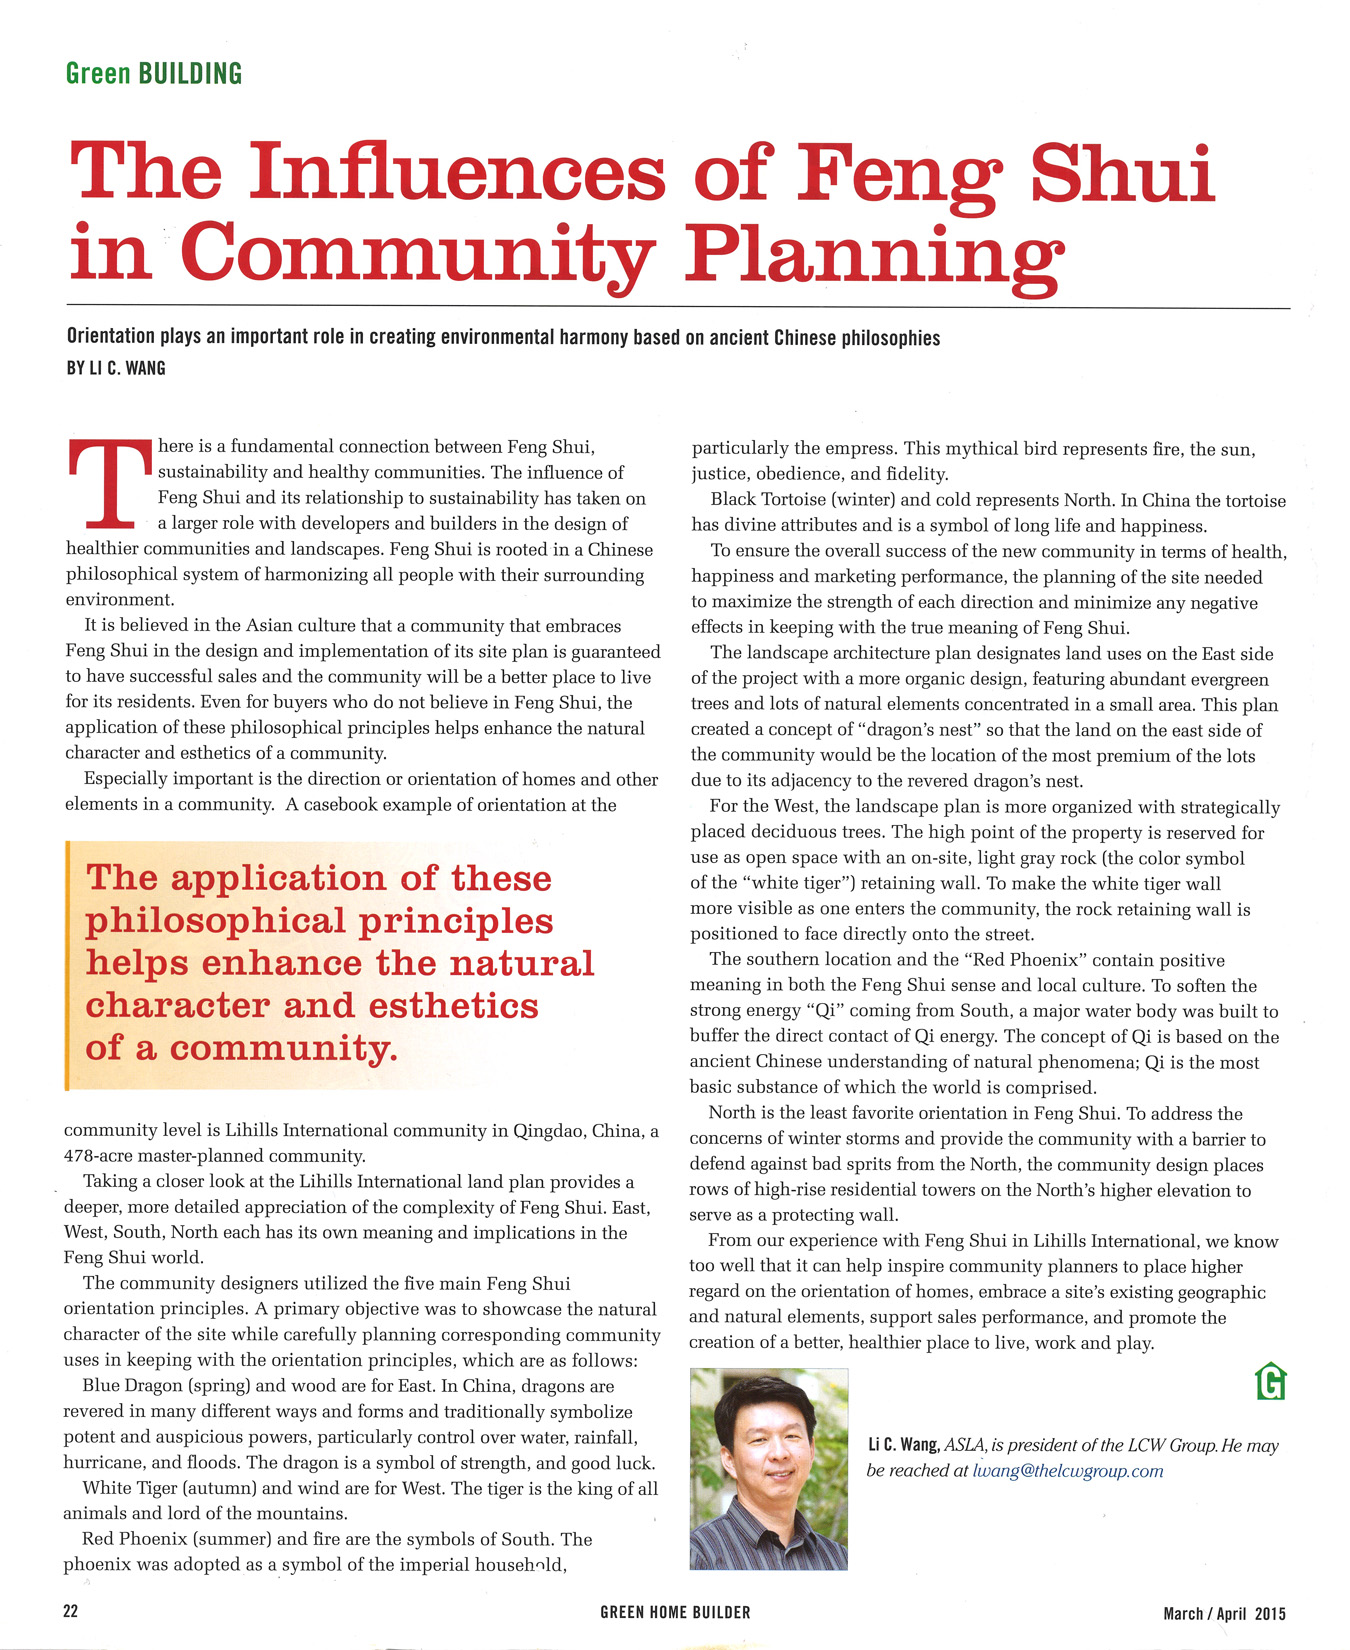 The Influences of Feng Shui in Community Planning_LR